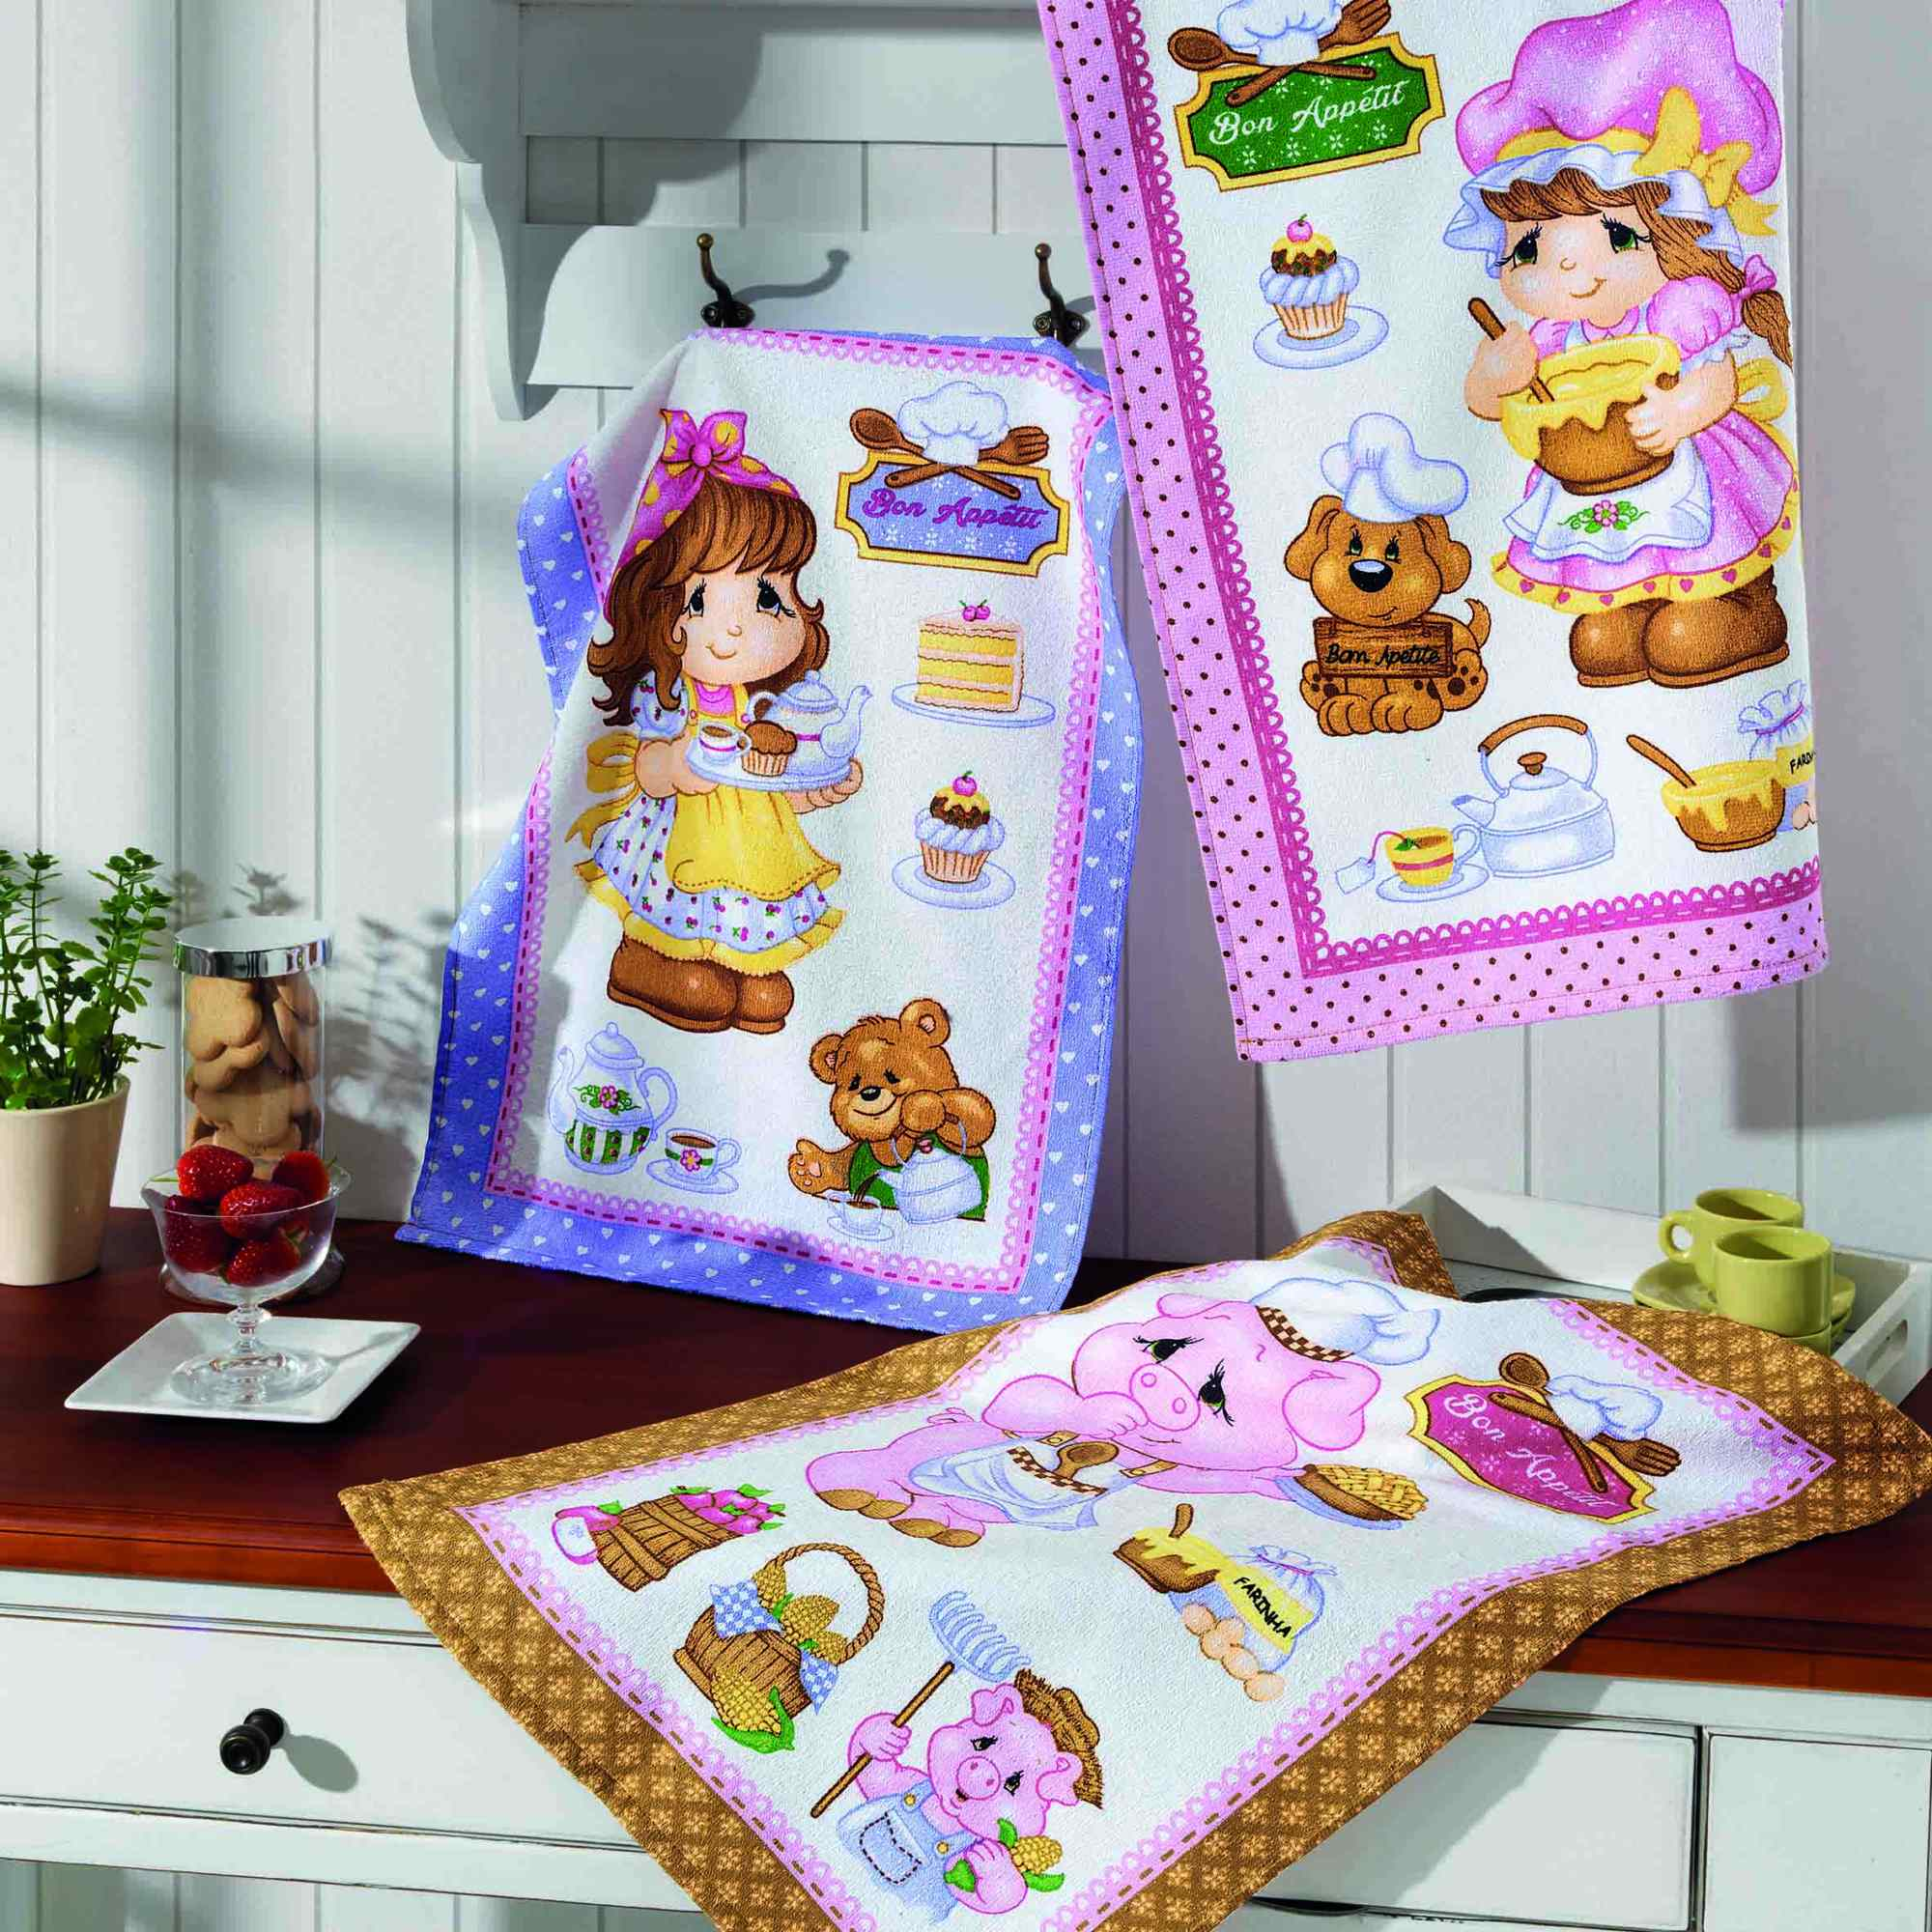 kit 3 panos de copa felpudo prata estampado dohler 100% algodão happy kitchen